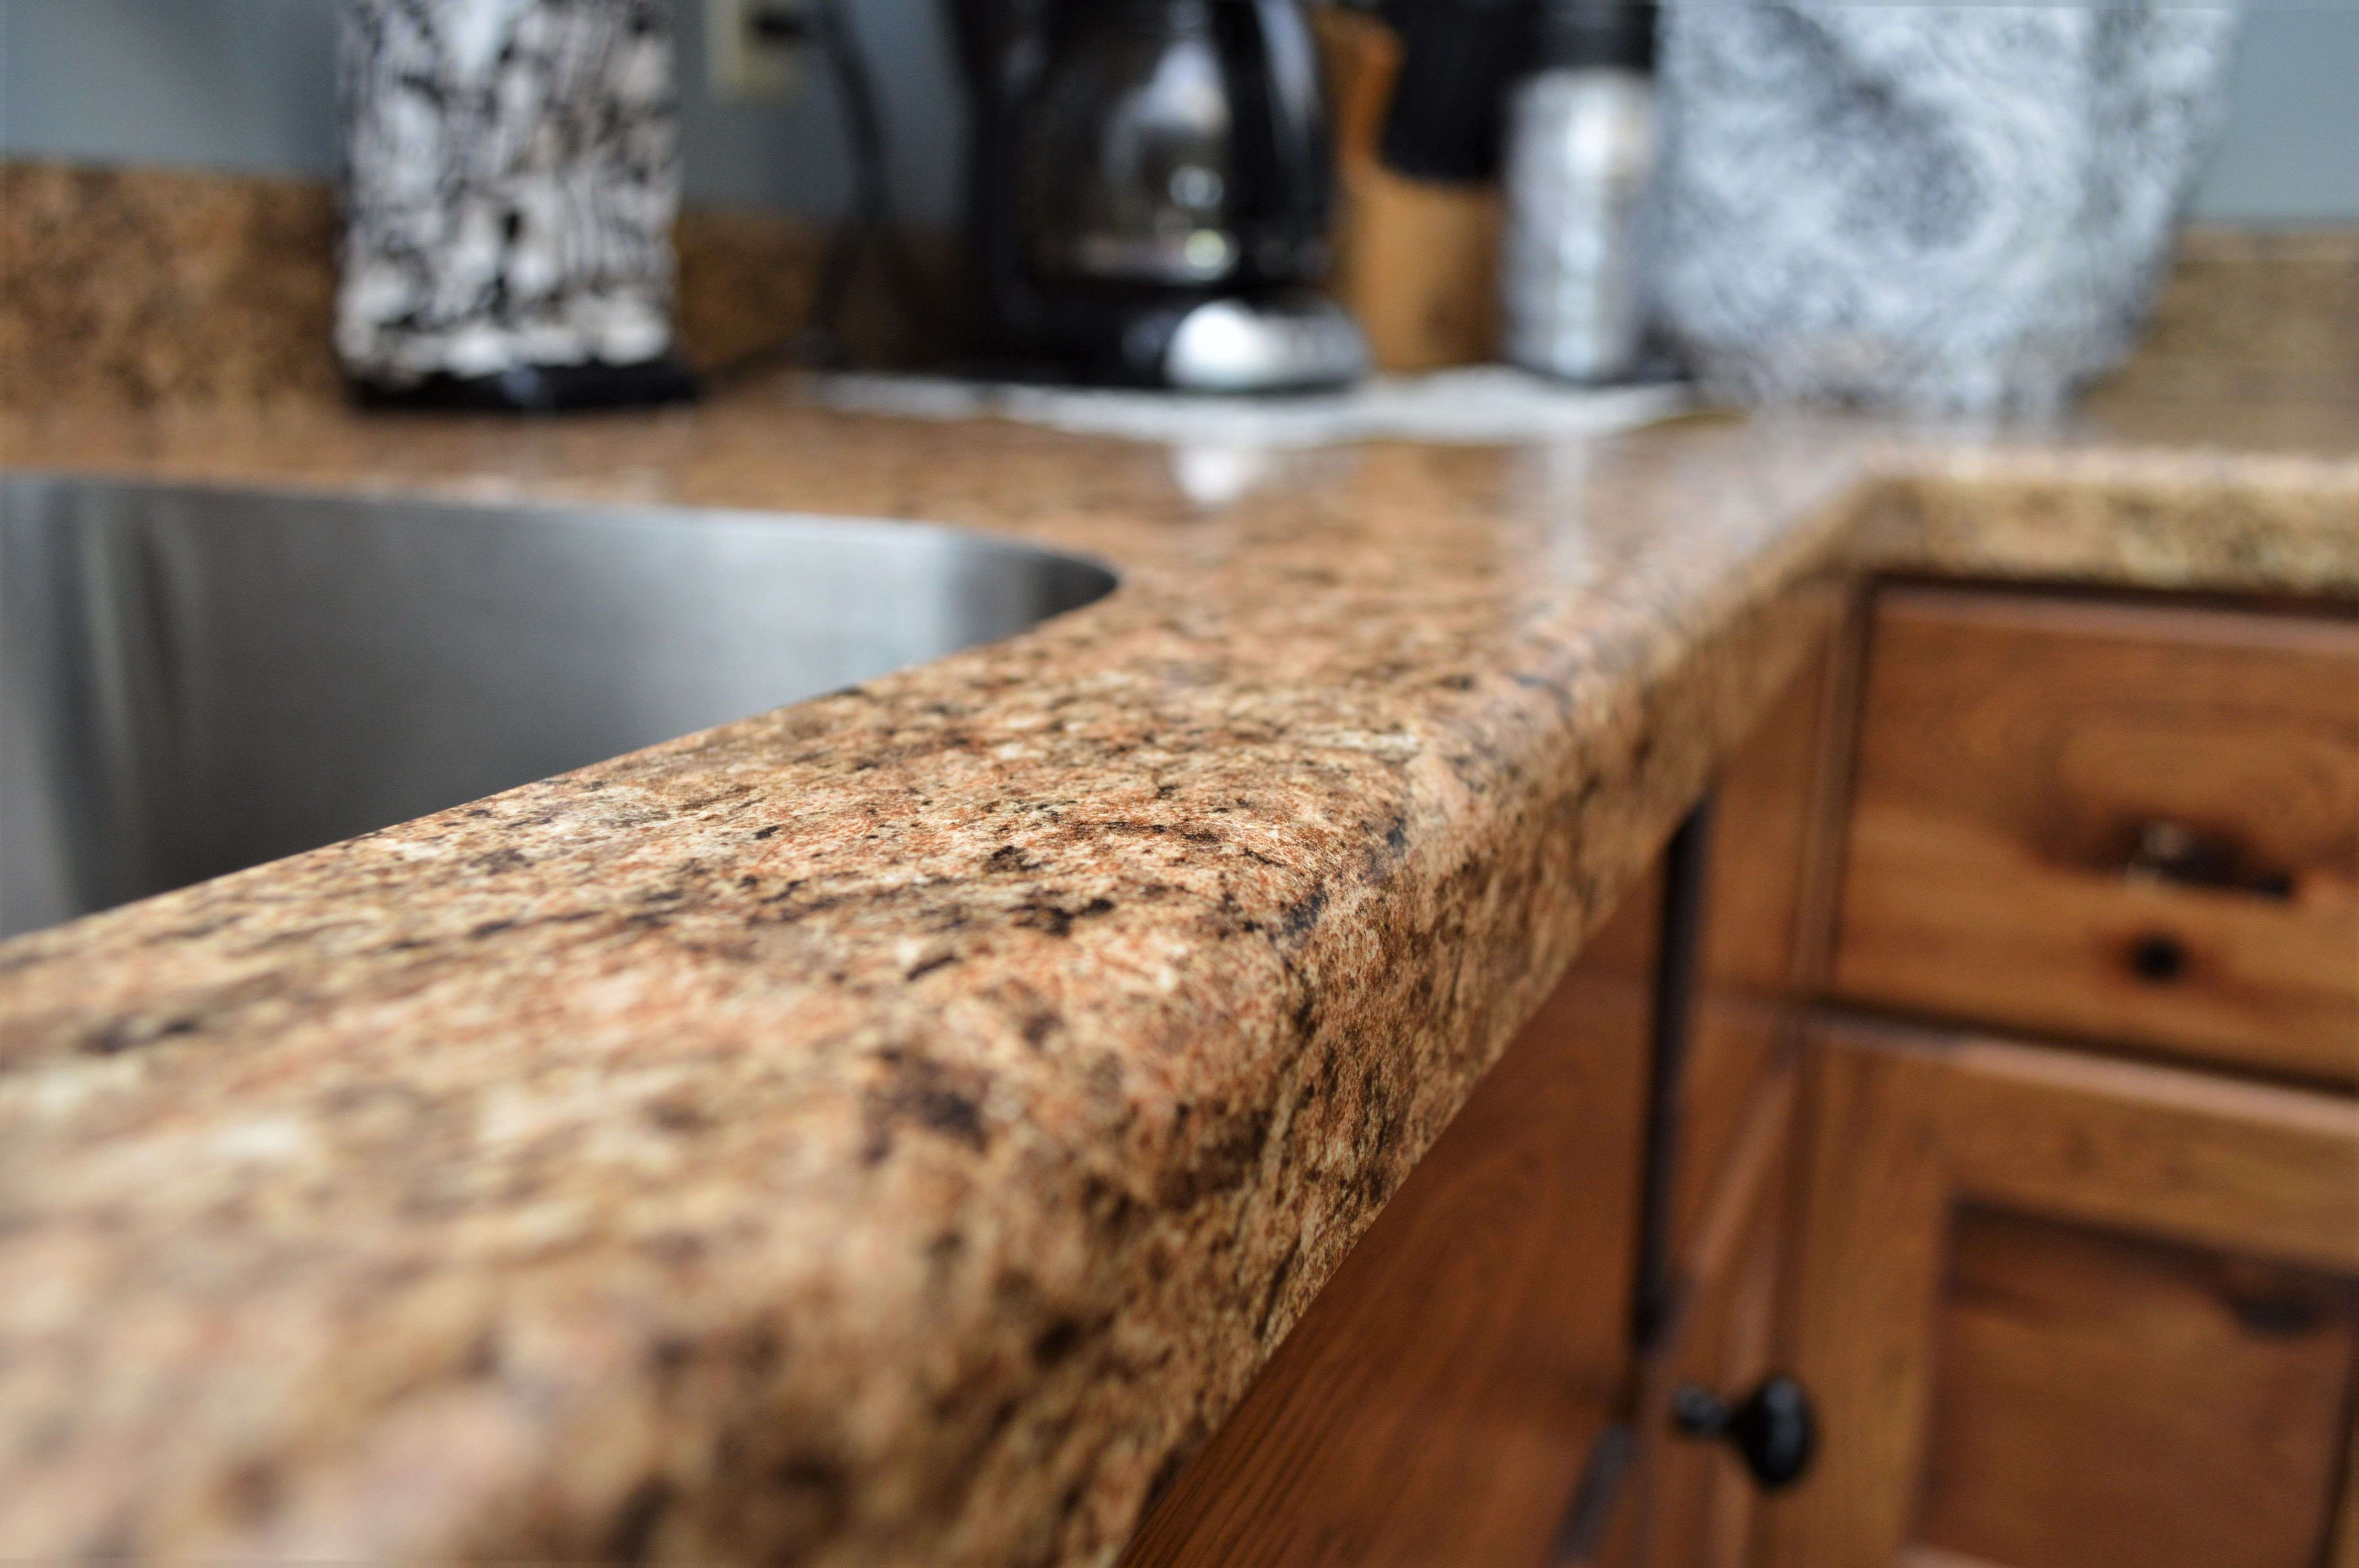 Bailey S Cabinets Laminate Counter Top Modern Edge Detail Coved